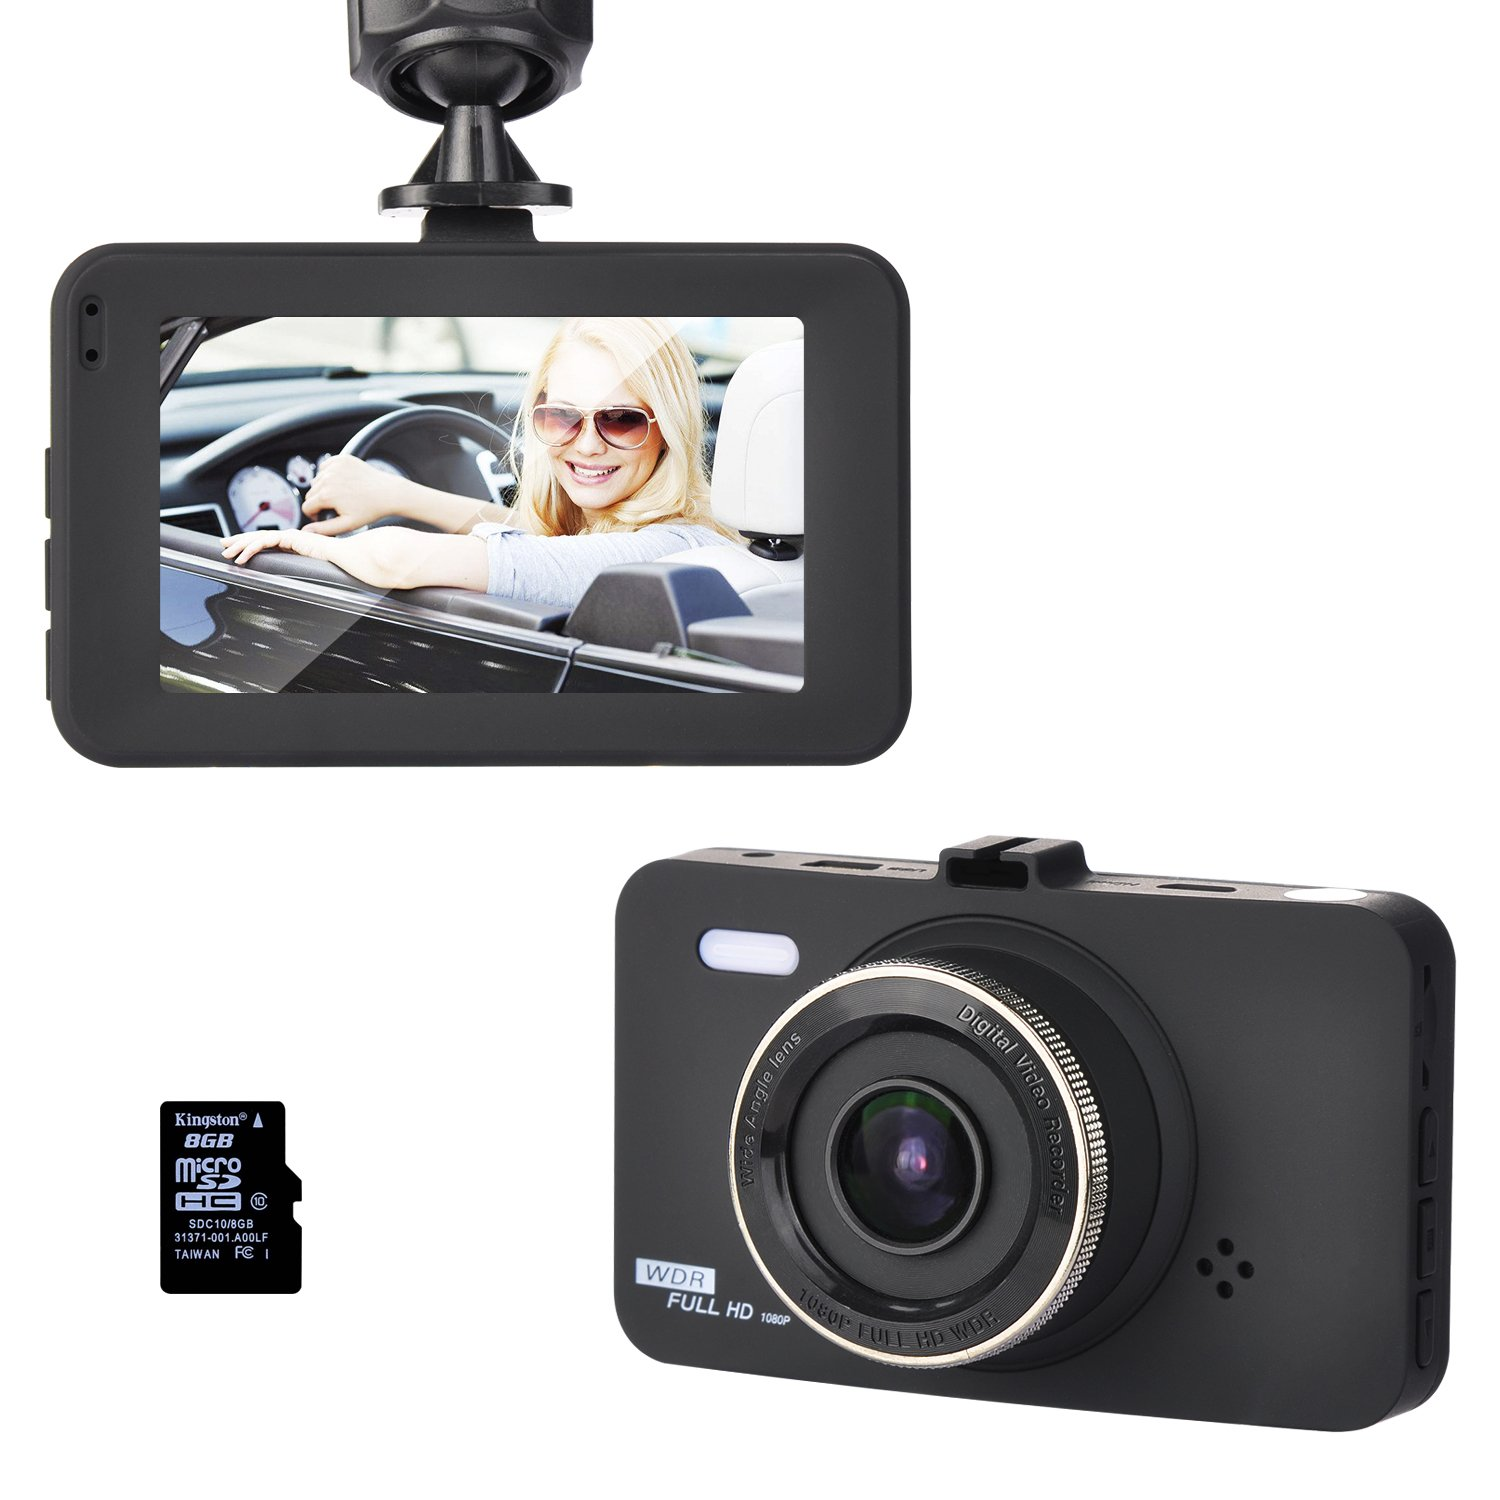 """Dash Cam 3"""" LCD FHD 1080P 170 Degree Wide Angle Dashboard Camera Car Recorder DVR with 16GB SD Card,Night Vision, G-Sensor, WDR,Loop Recording"""